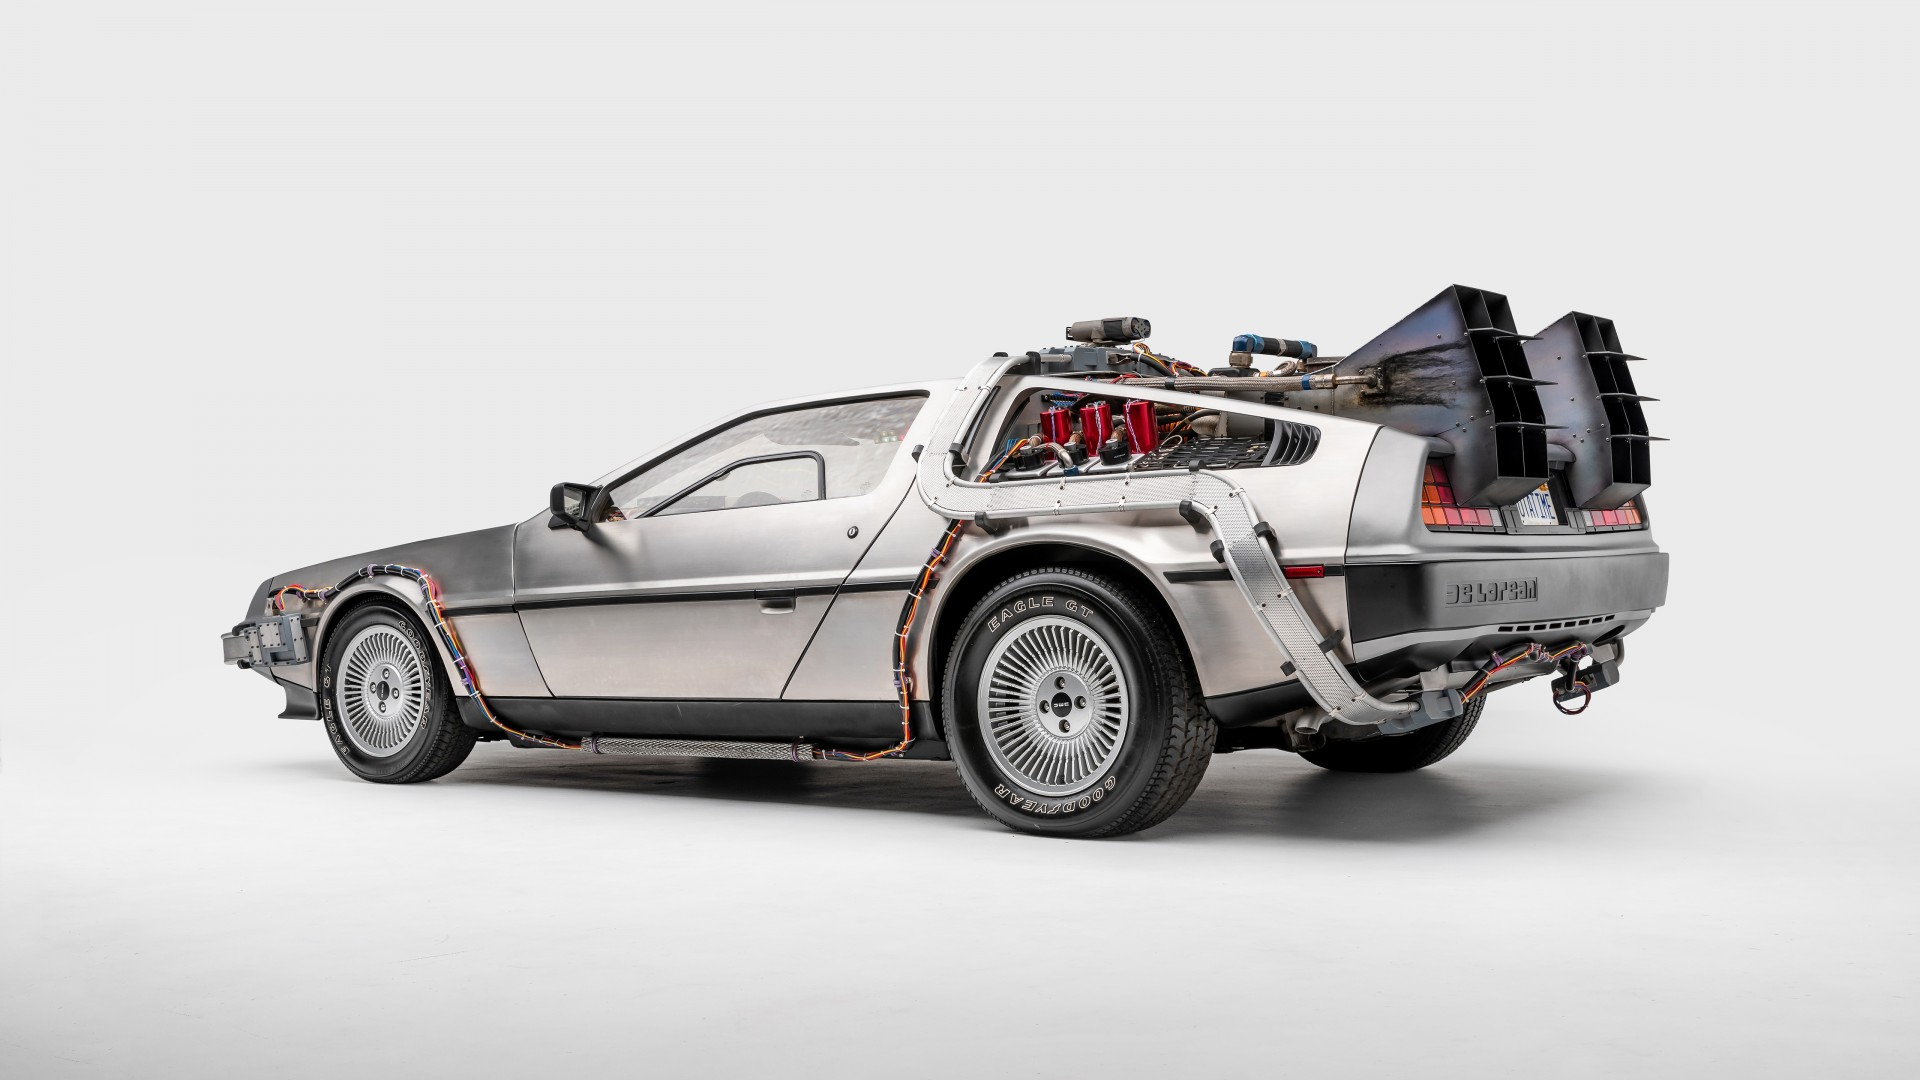 Delorean Dmc 12 Back To The Future 4k 3 Wallpaper Hd Car